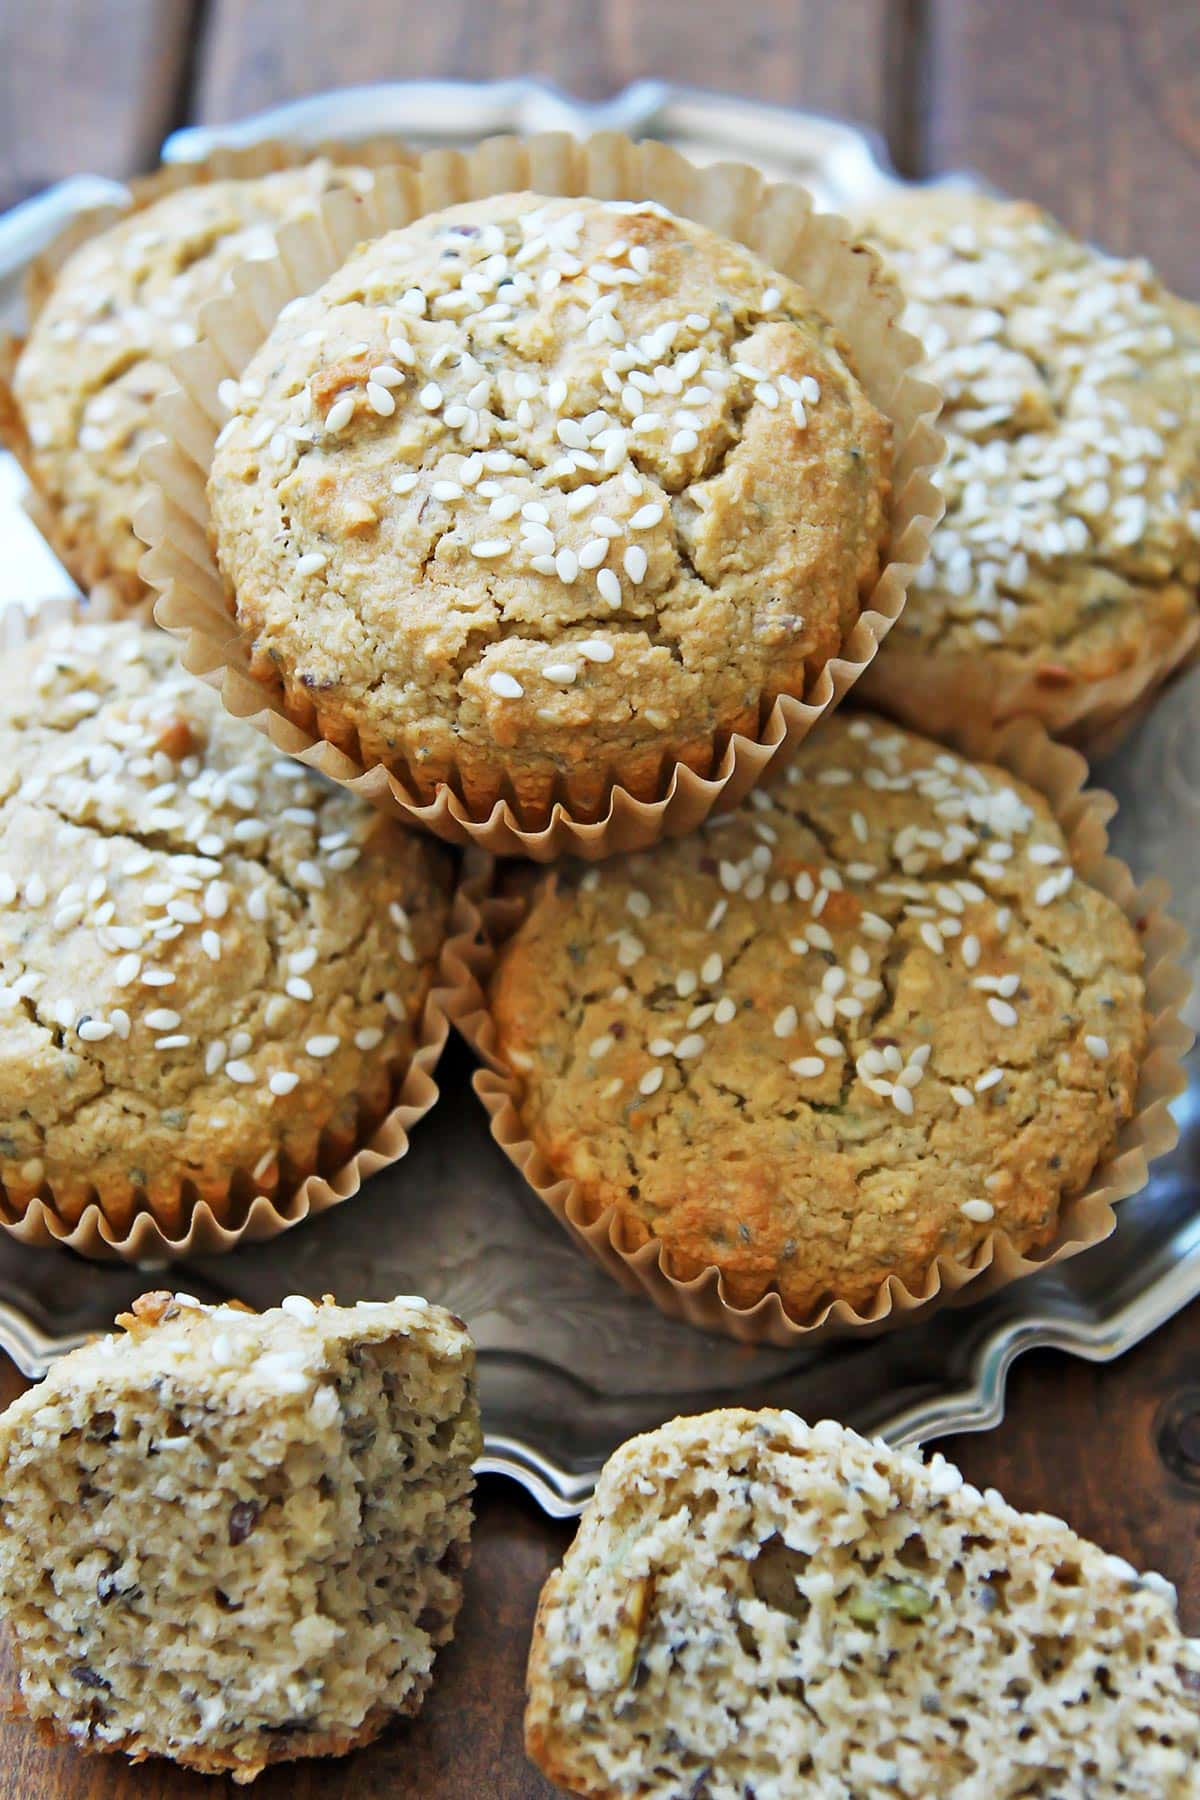 Tahini Sesame Seed Muffins on tray and wooden table